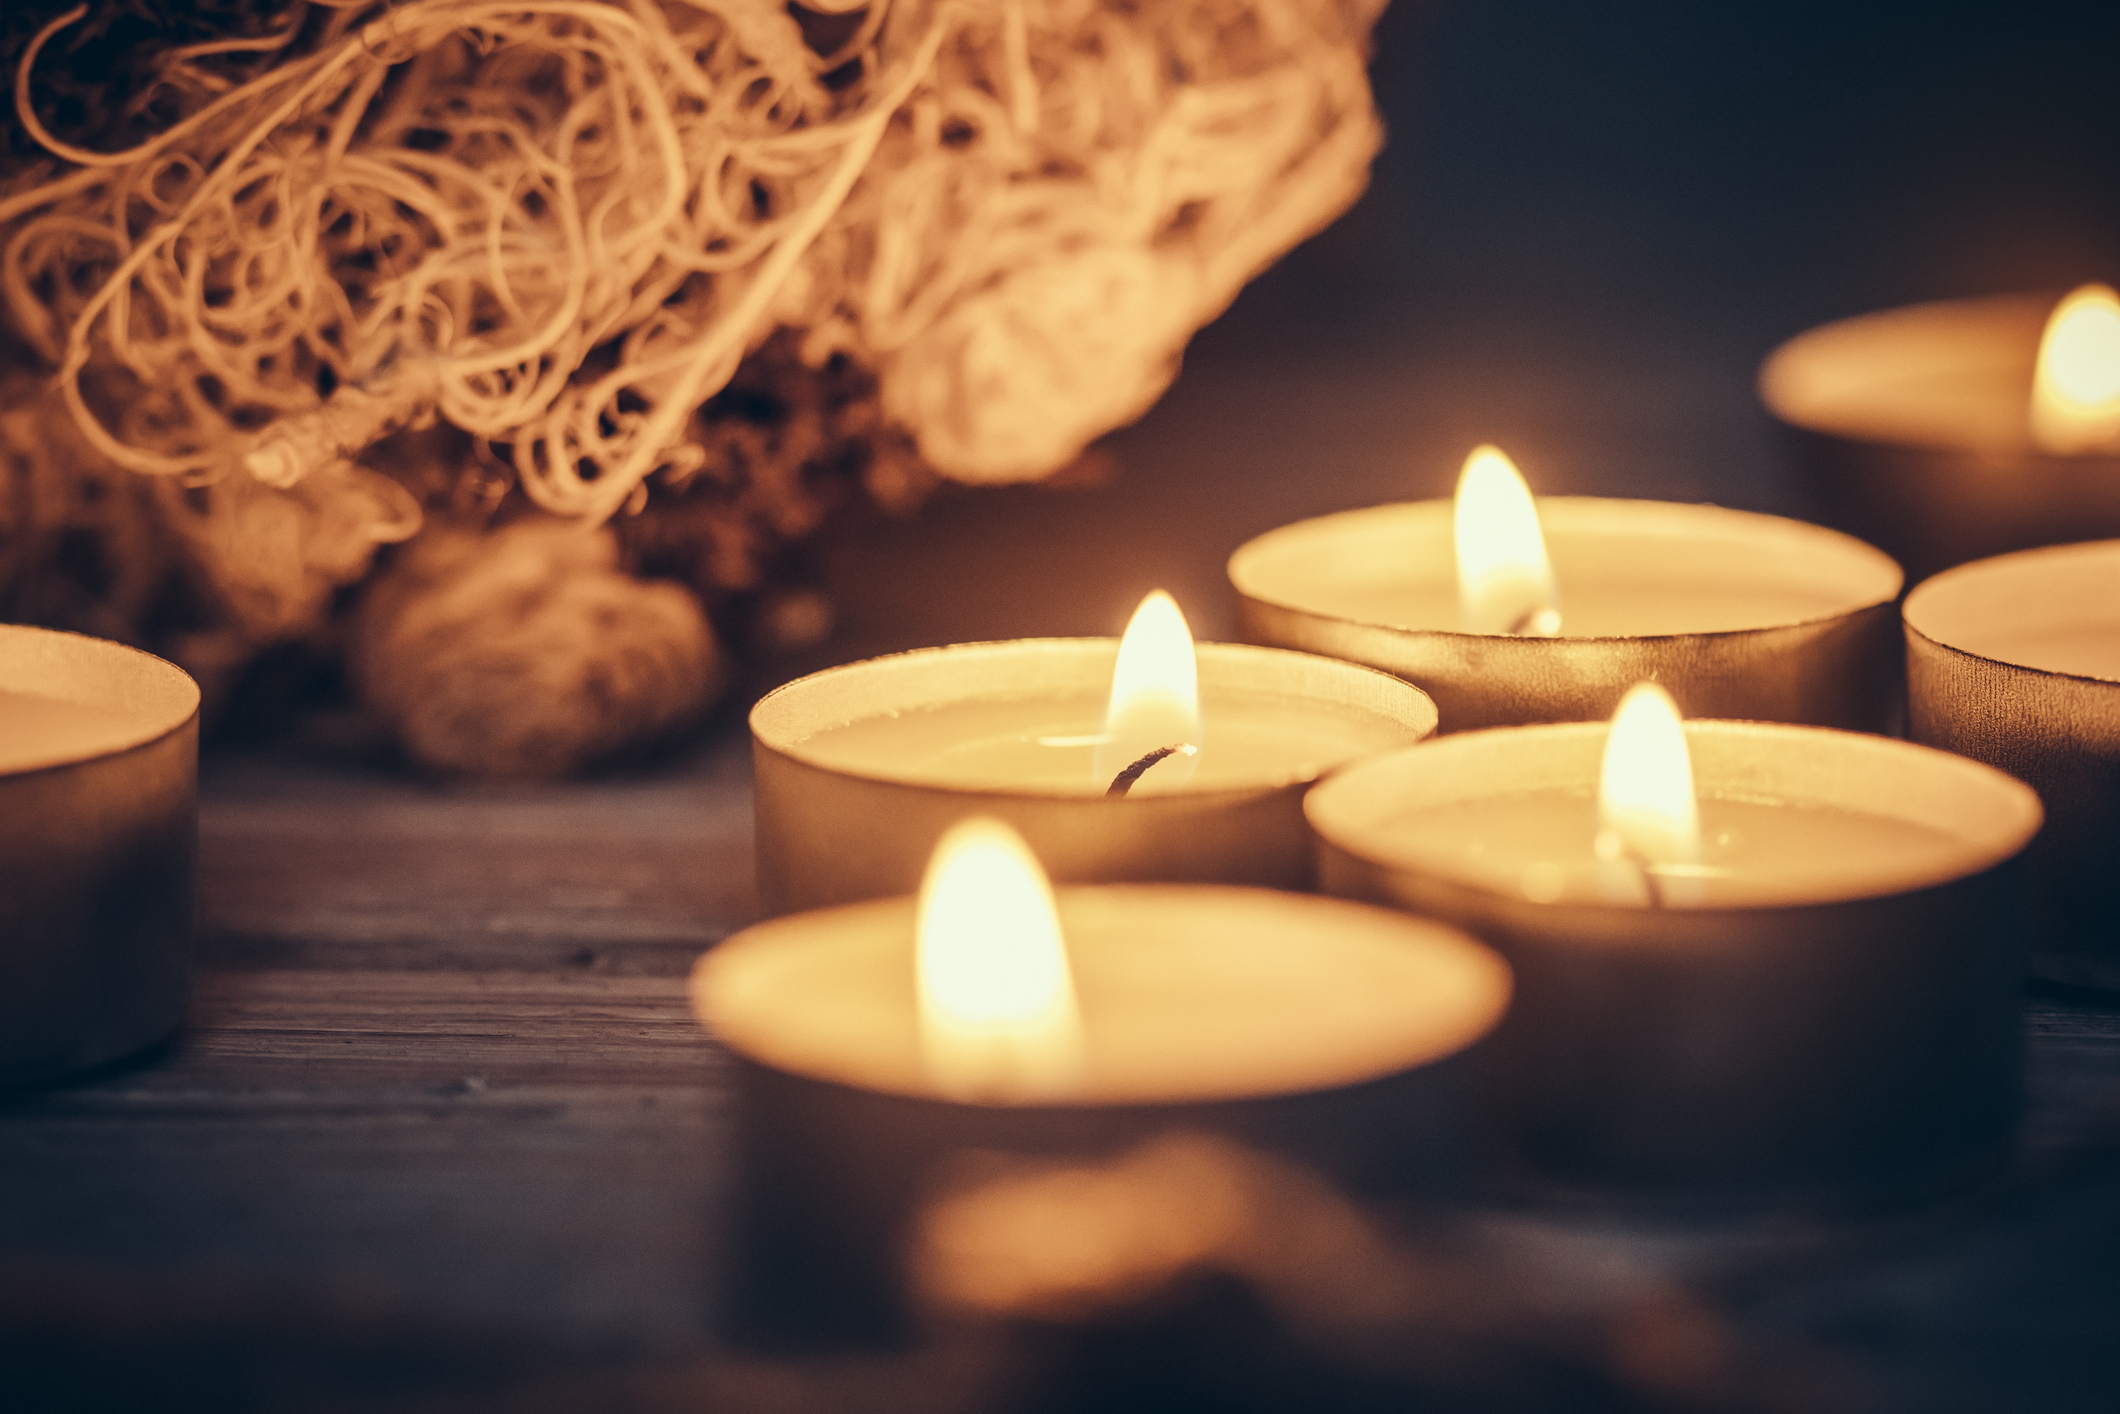 Holiday candles. Symbol of hope. Stock photo.